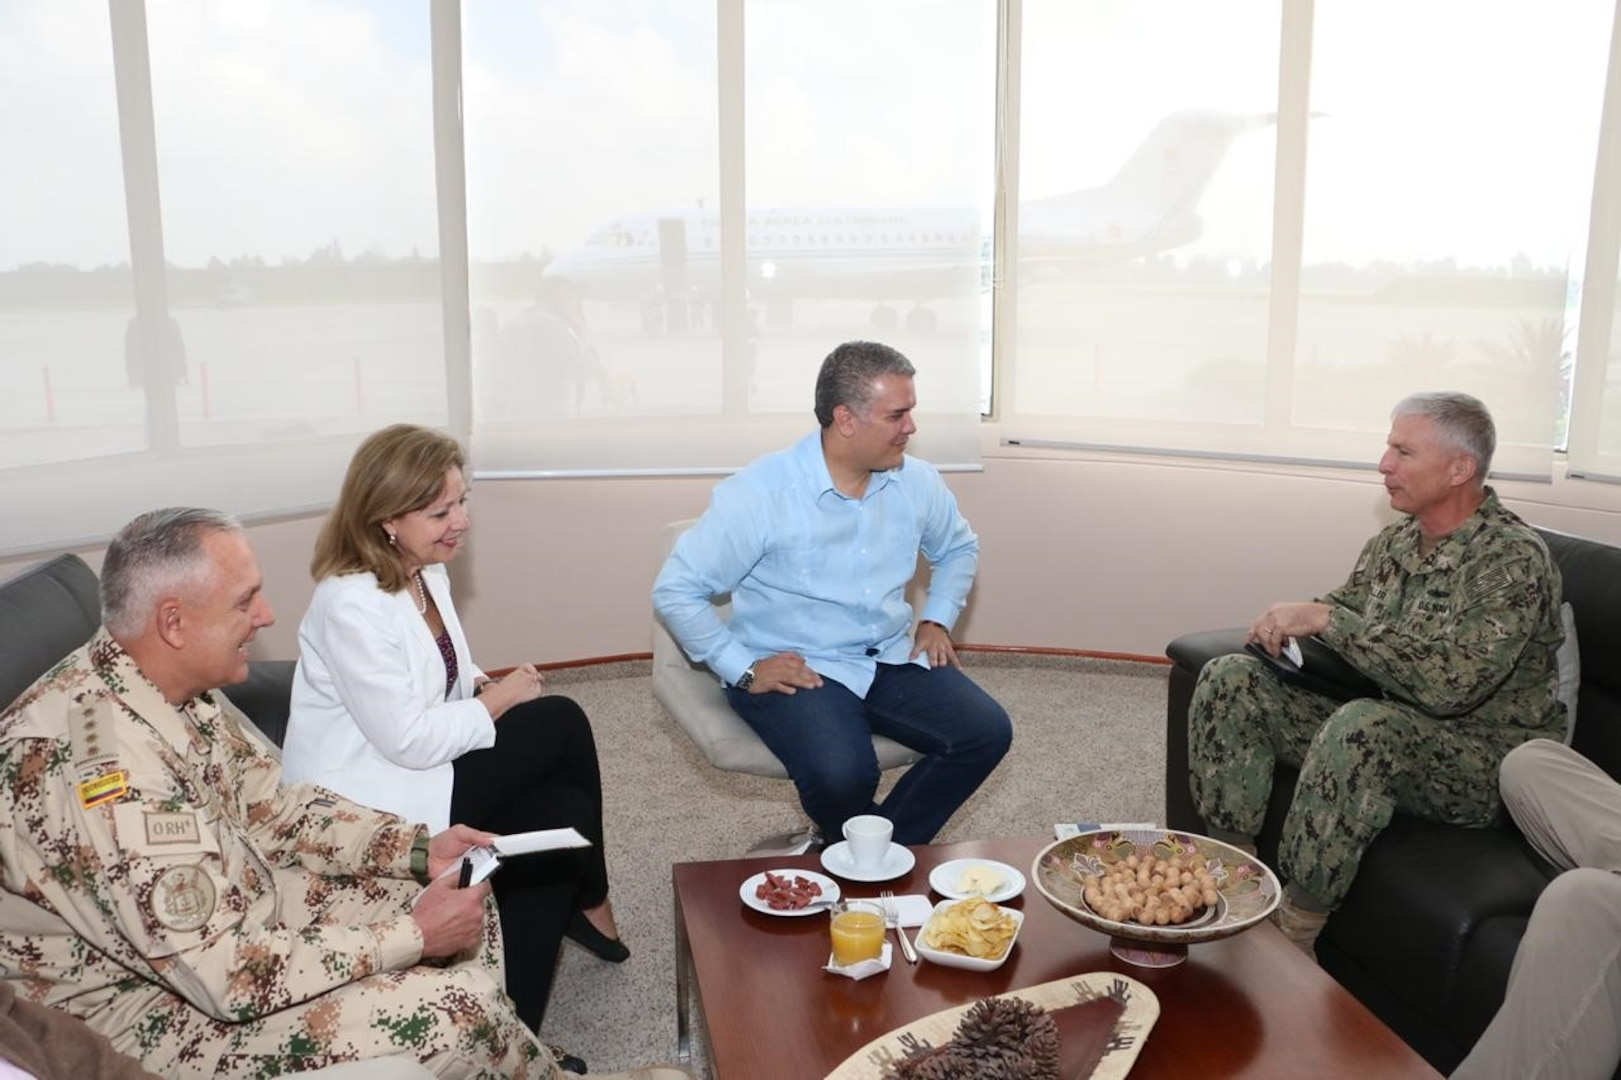 Colombian President Ivan Duque meets with Navy. Adm. Craig S. Faller, commander of U.S. Southern Command, along with U.S. Ambassador Kevin Whitaker and other officials, to discuss the continuation of U.S.-Colombia security cooperation.